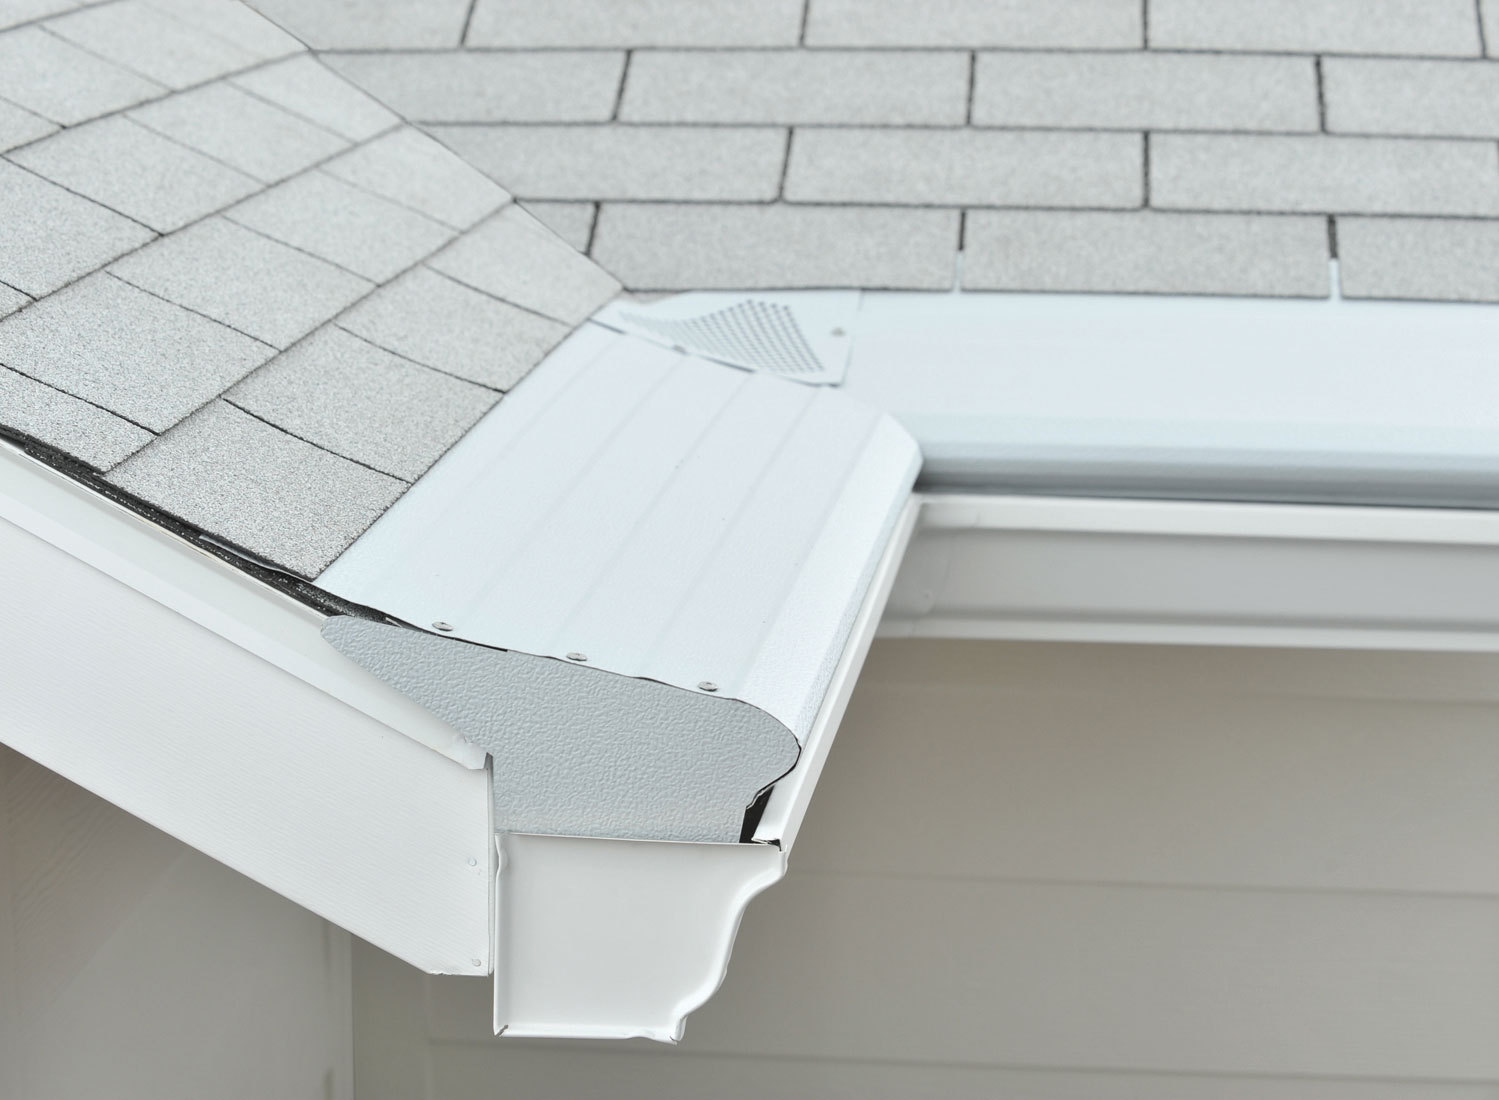 How Much Do New Rain Gutters And Gutter Guards Cost